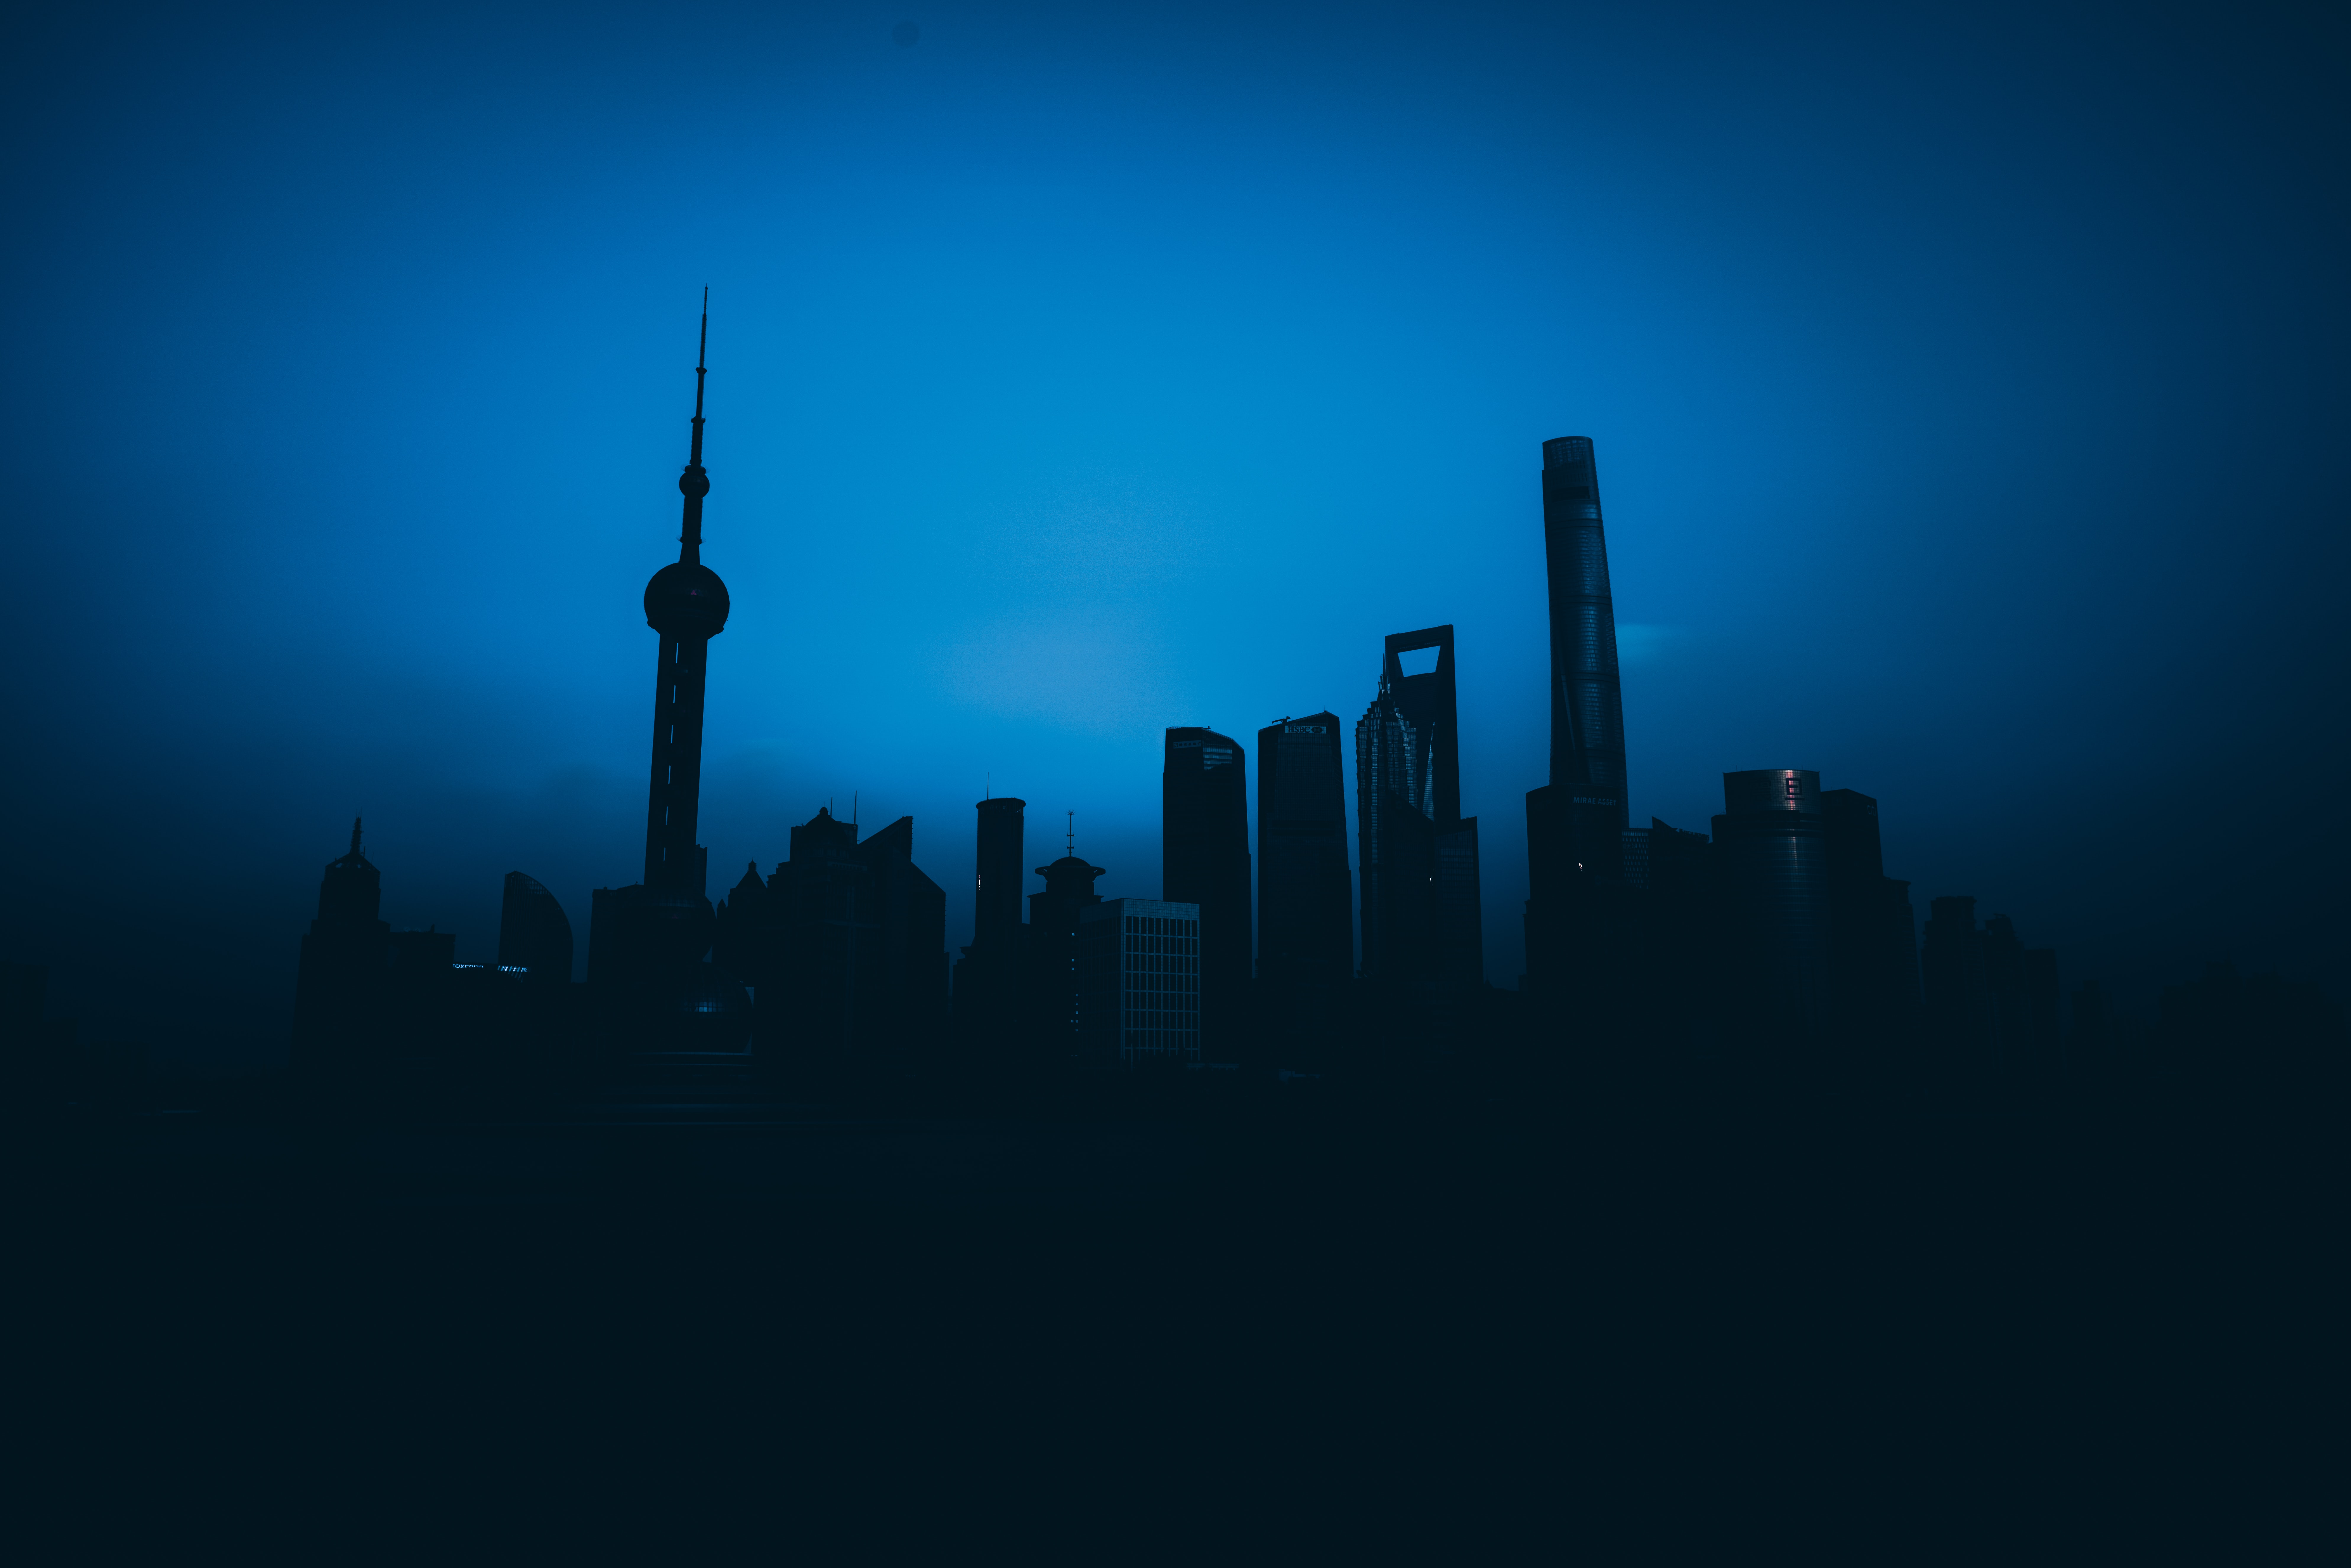 silhouette photography of city skyline